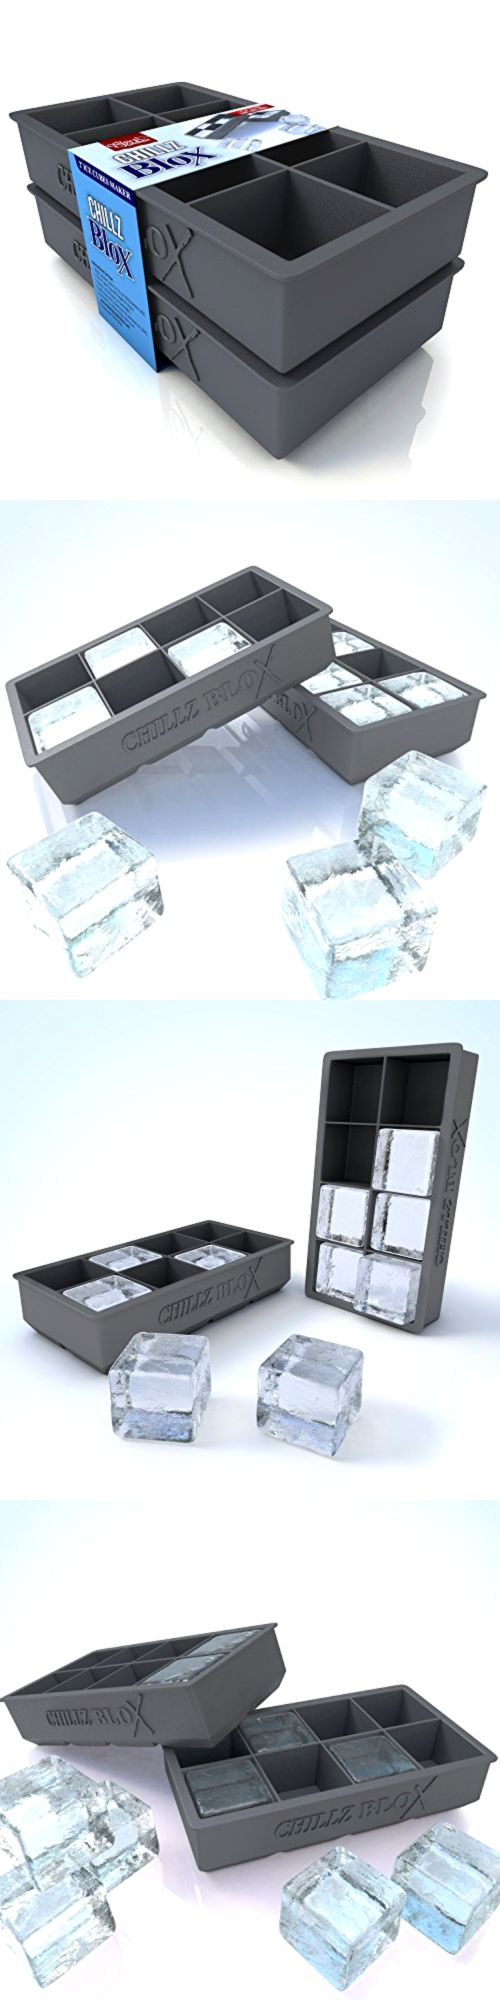 Ice Cube Trays and Molds 177015: Chillz Blox Large Ice Cube Tray For Whiskey - Silicone Ice Mold Maker - Molds 8 -> BUY IT NOW ONLY: $44.96 on eBay!